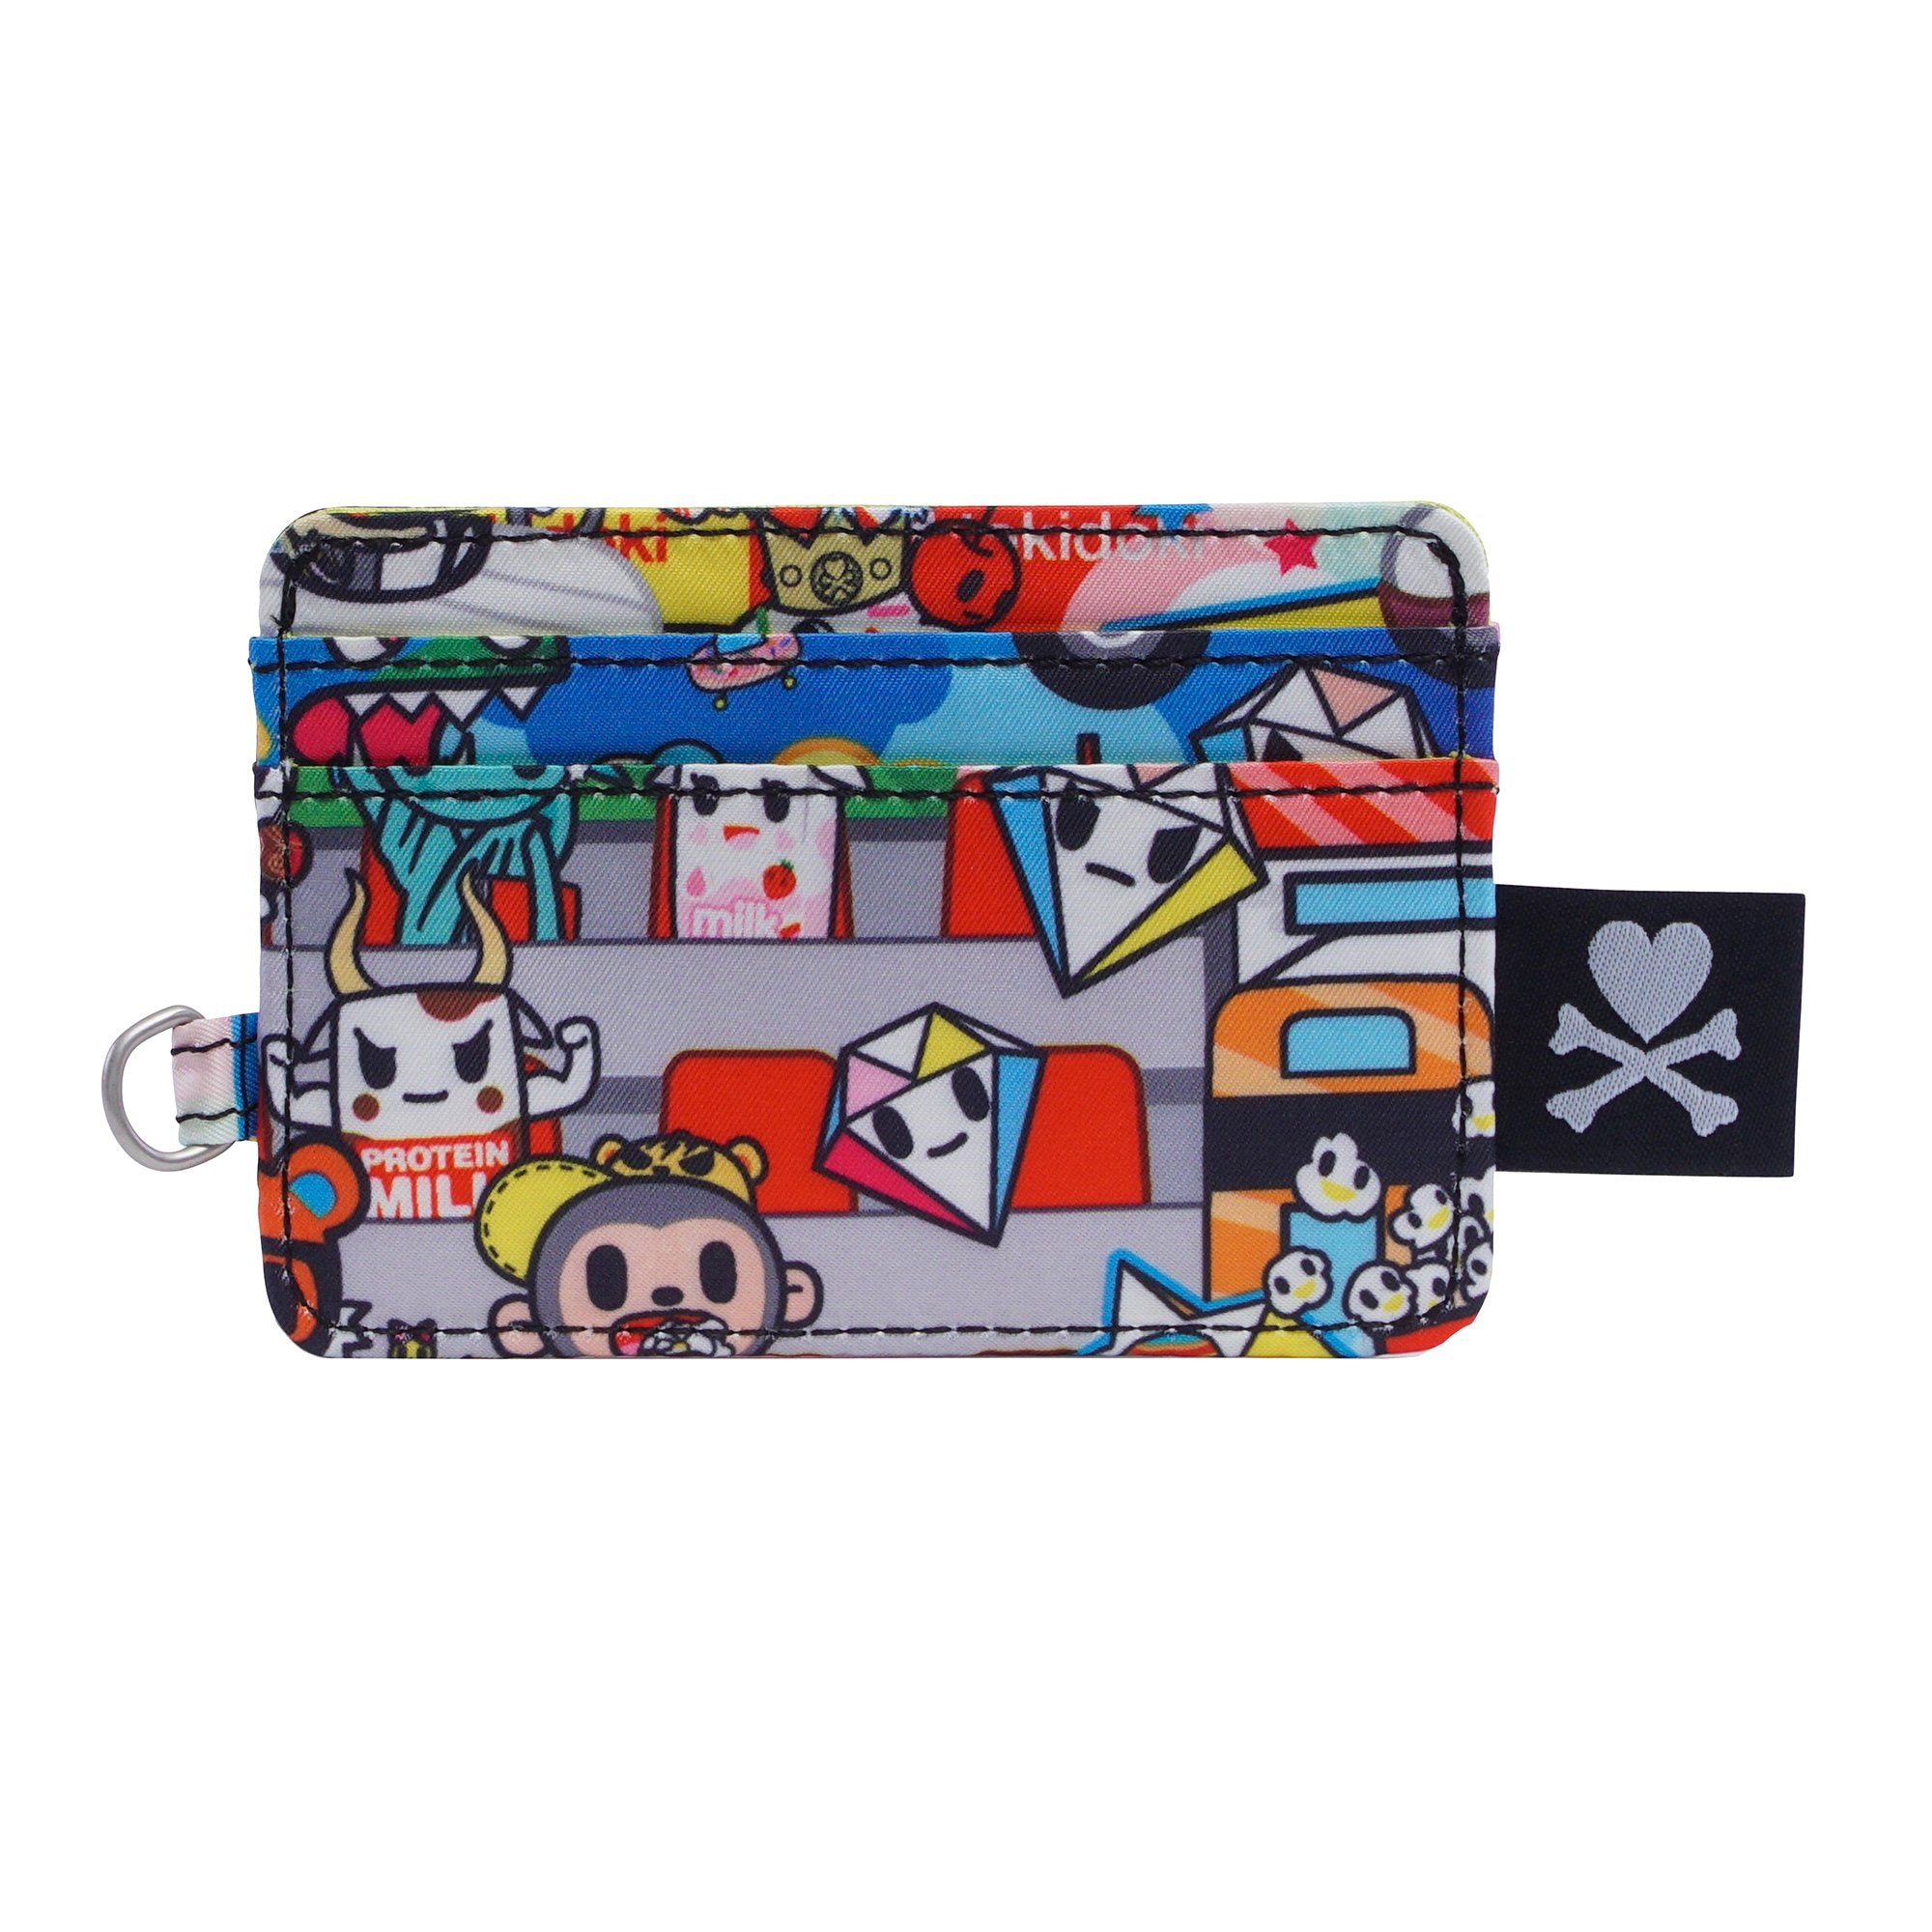 768b2a951 Ju-Ju-Be x tokidoki Be Charged in Sushi Cars * – Laura's Little Boutique  Global